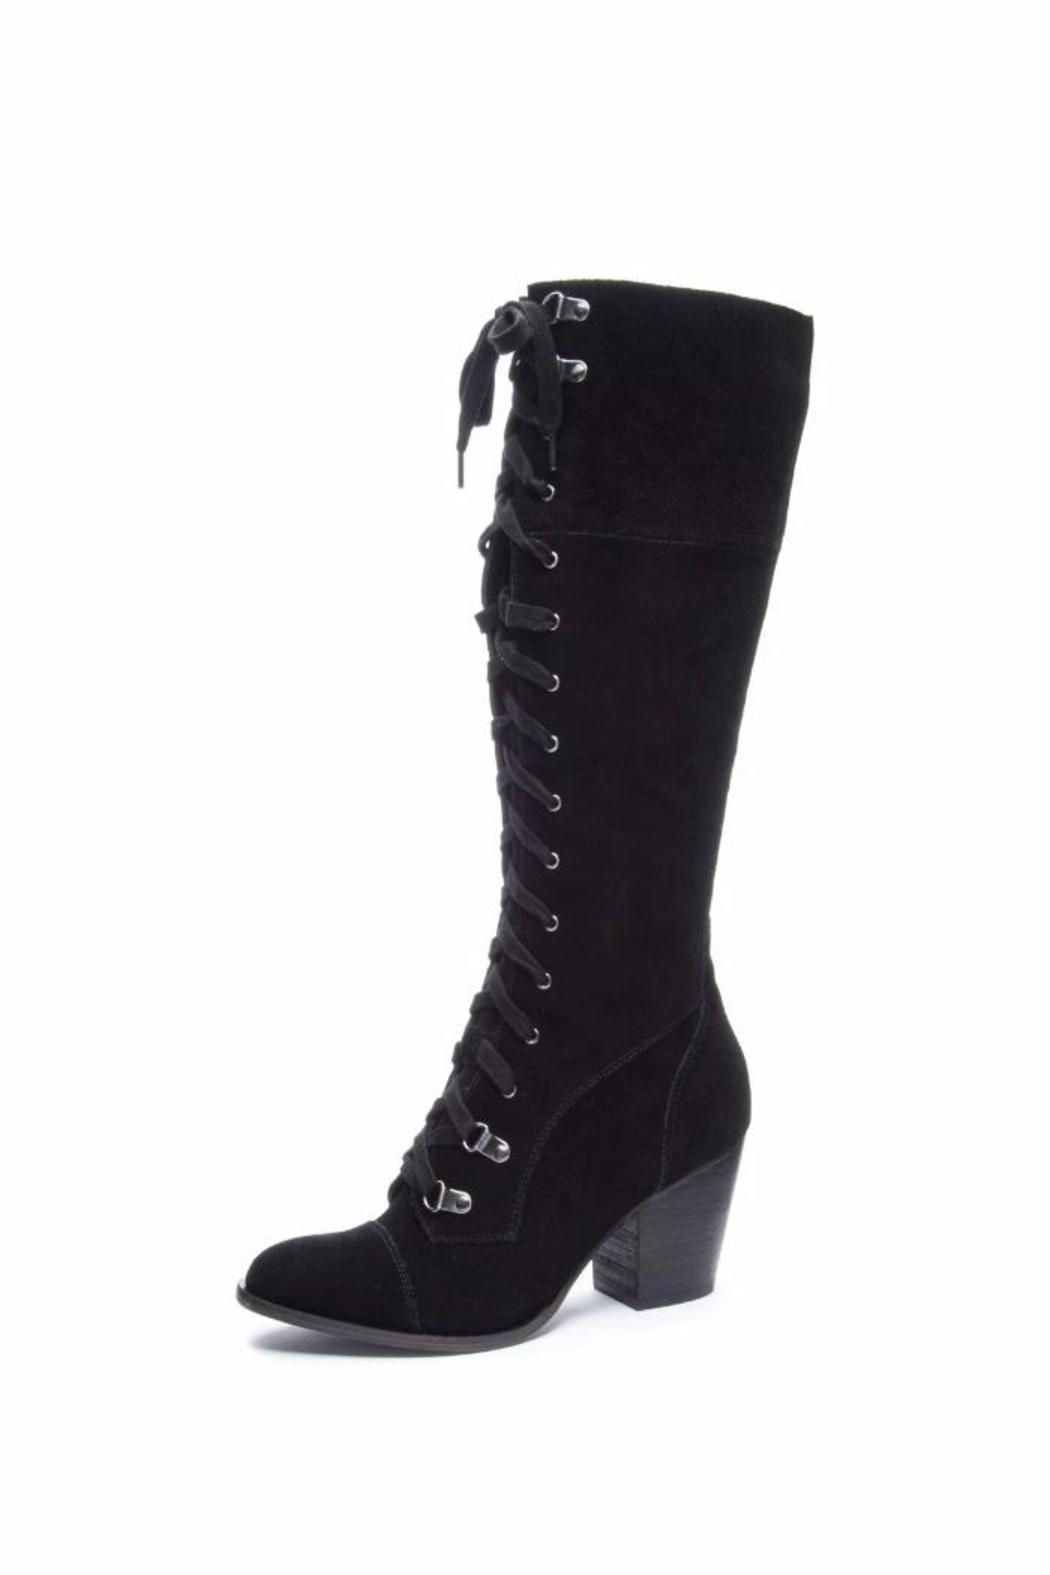 Chinese Laundry Keepsake Boots Knee Boots Black Boots